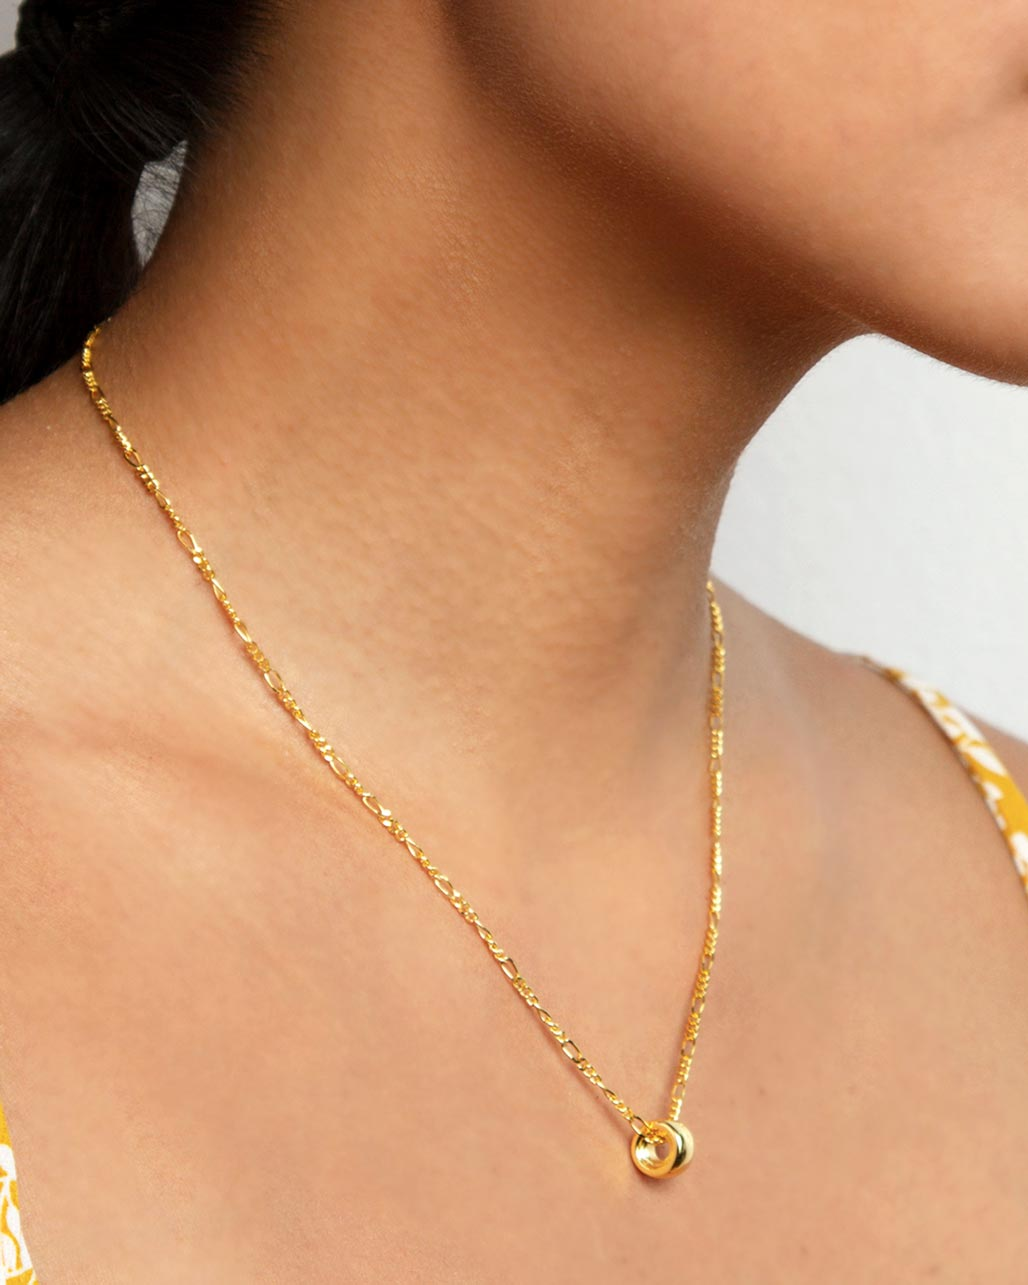 The Erica Gold Filled Necklace